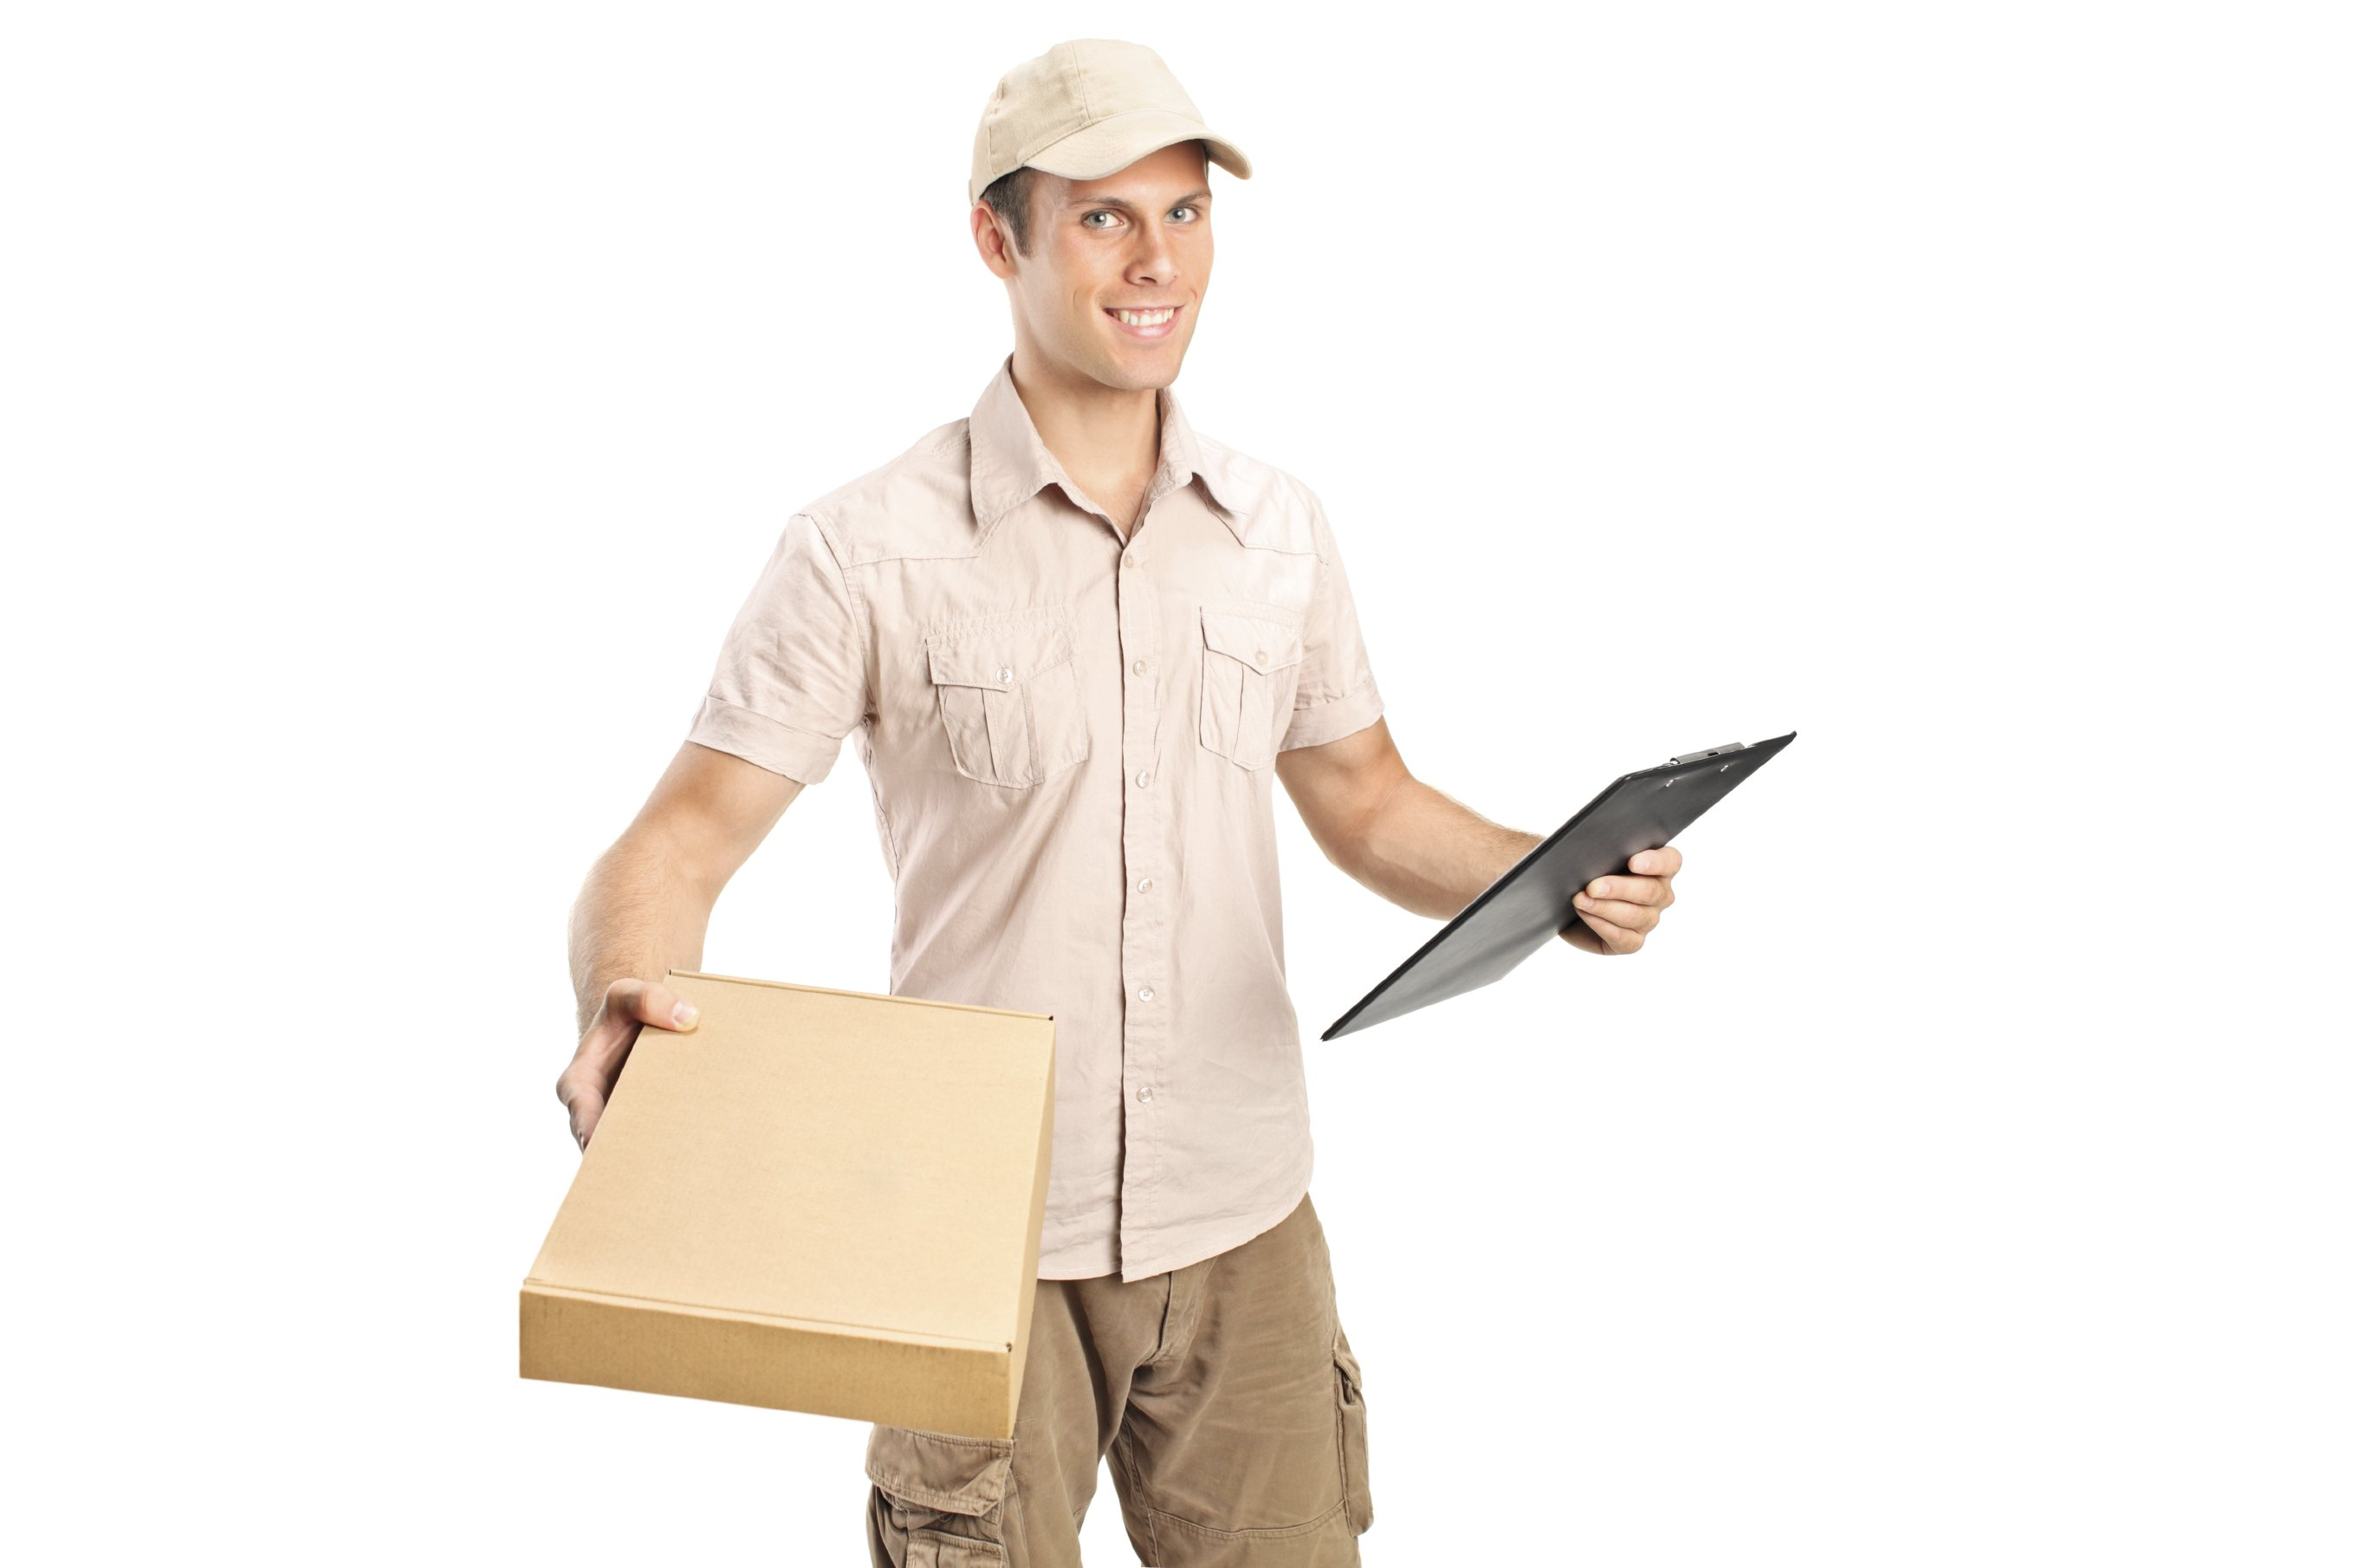 Delivery Boy Jobs In Hyderabad: A Good Profession To Earn Well